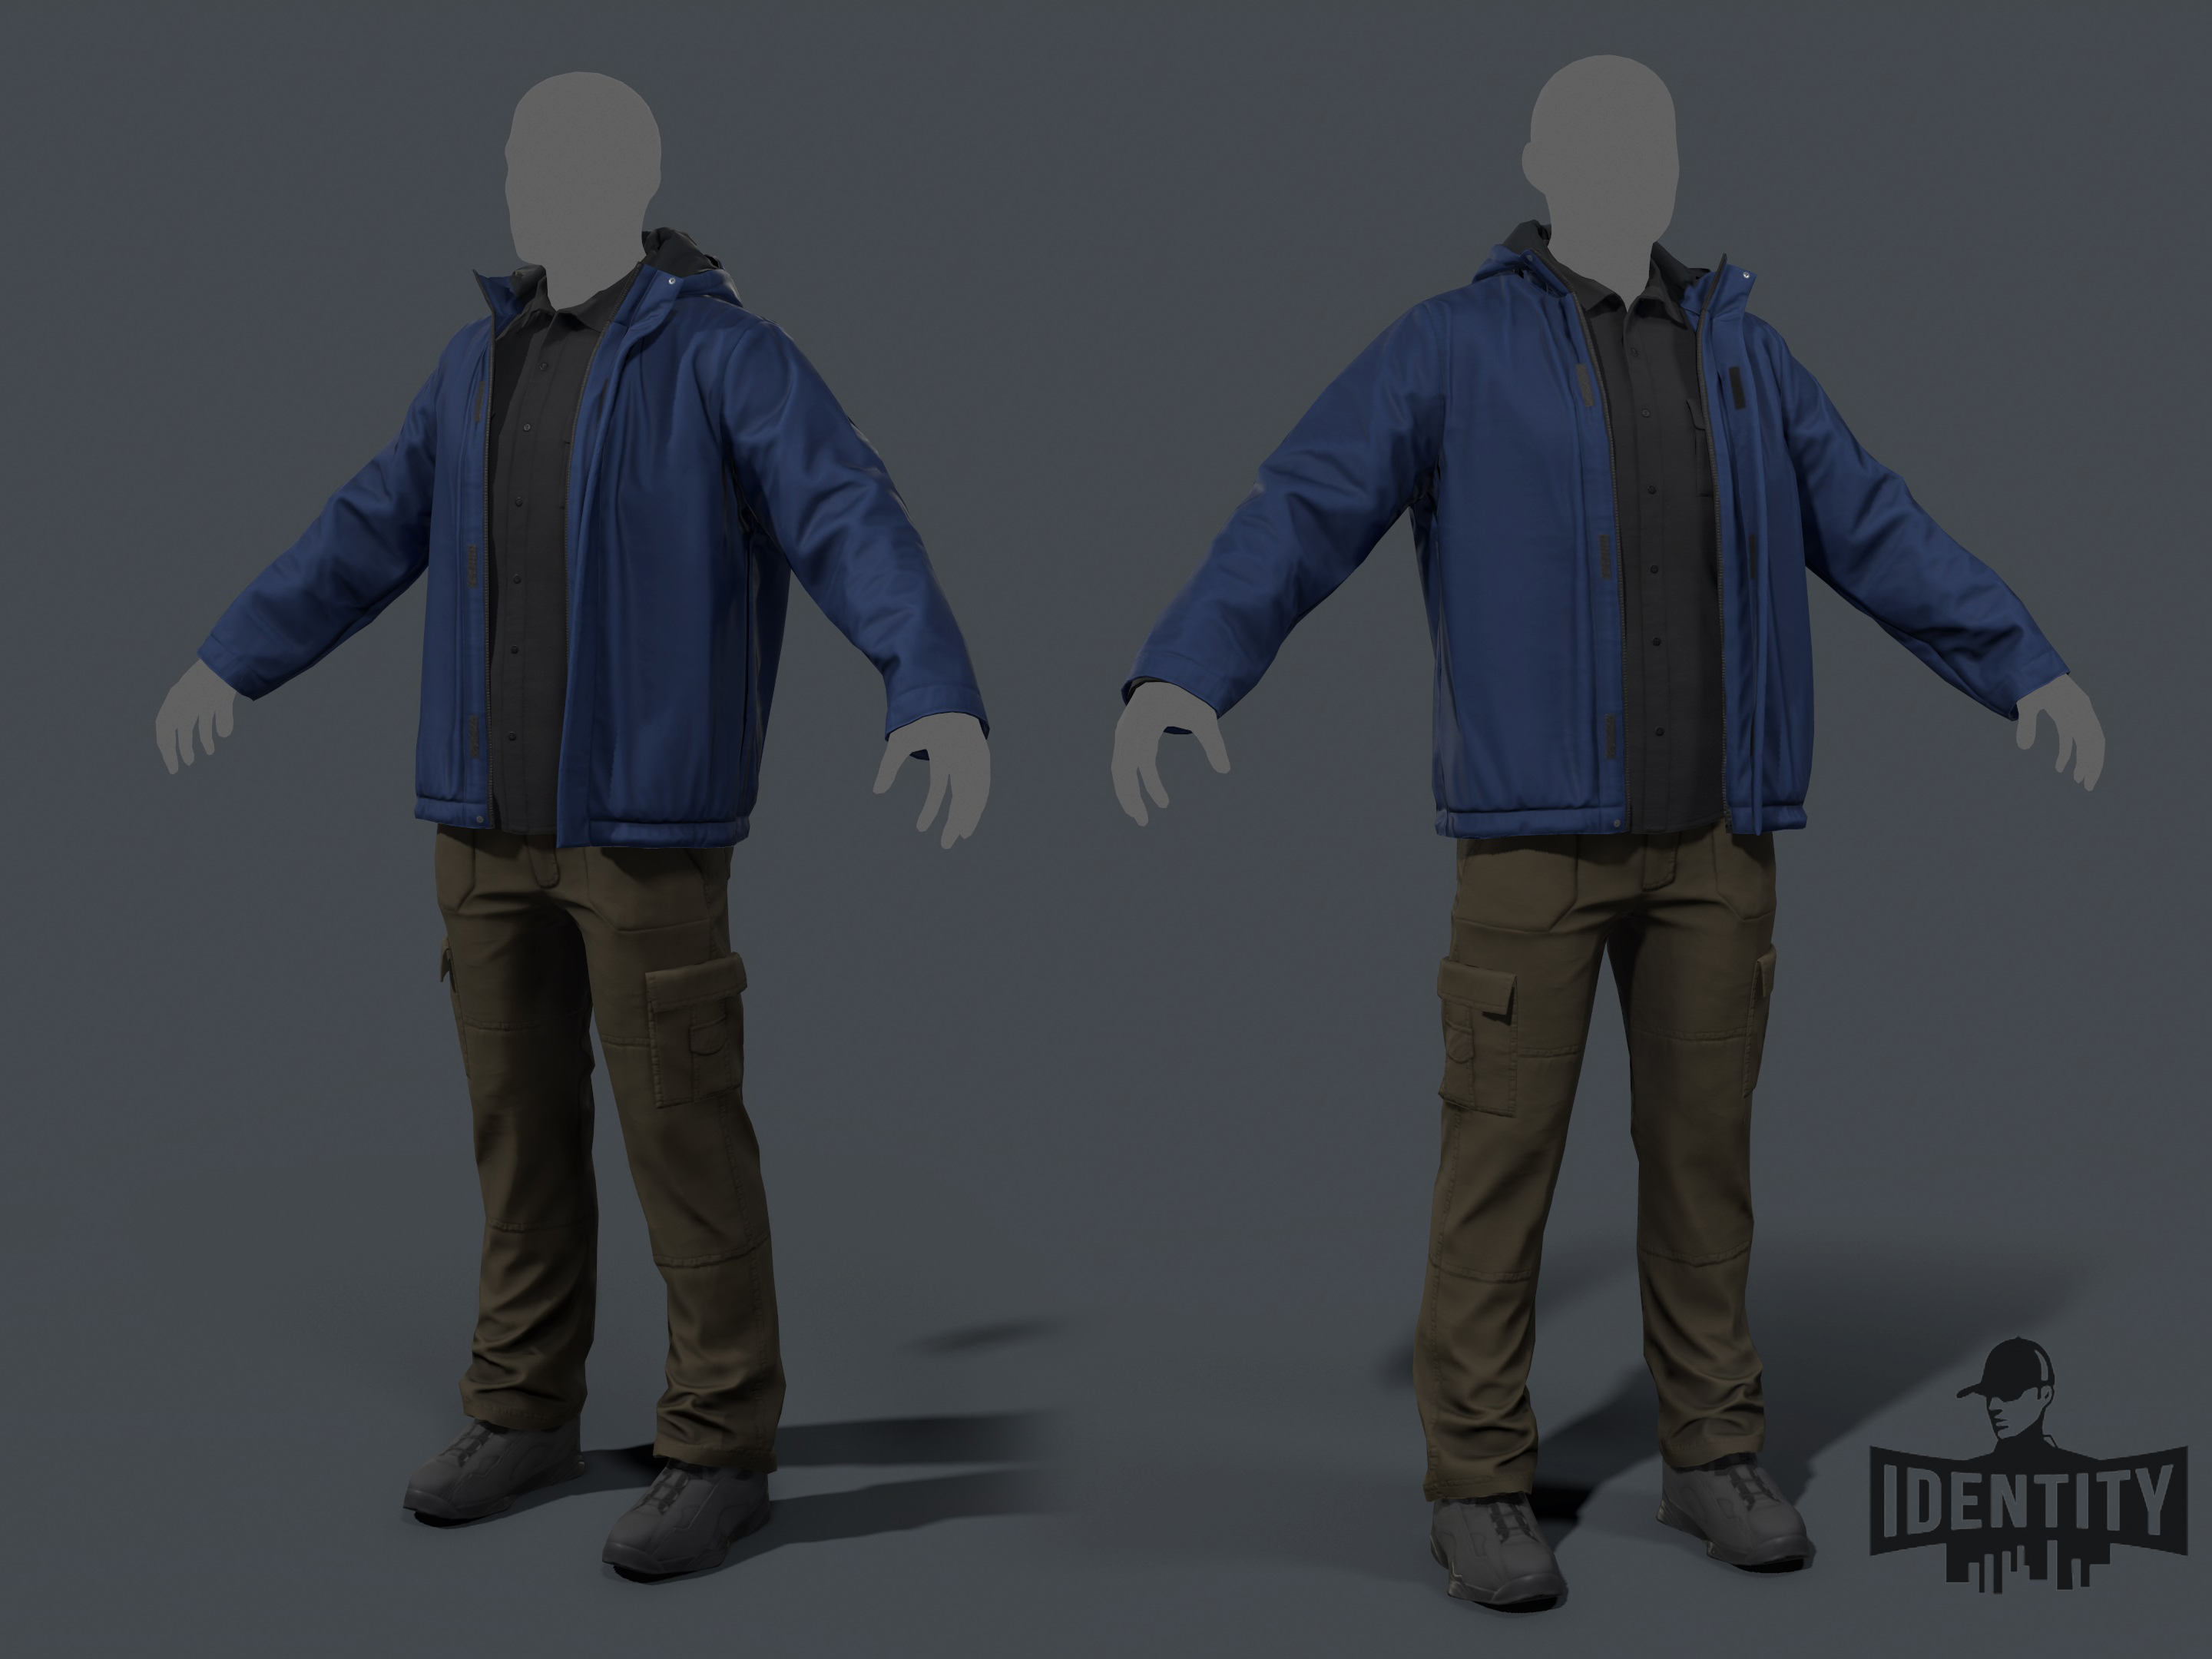 Clothing and furniture for Identity RPG